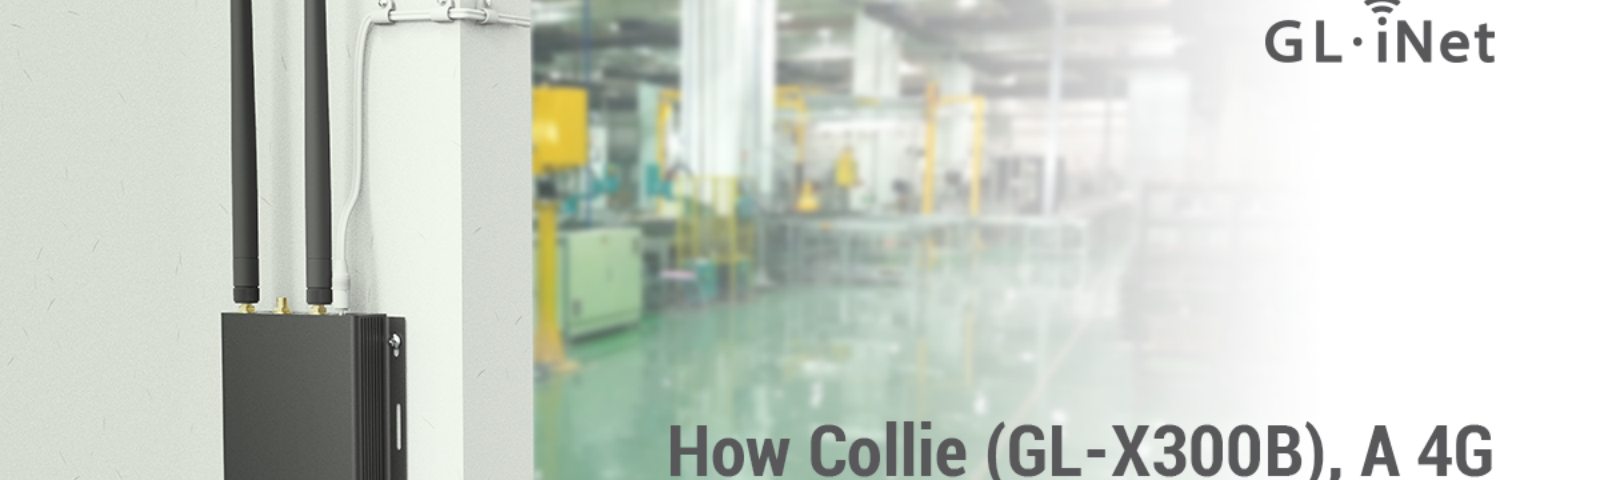 How Collie (GL-X300B), A 4G LTE Wireless Gateway Helps With Your Business?